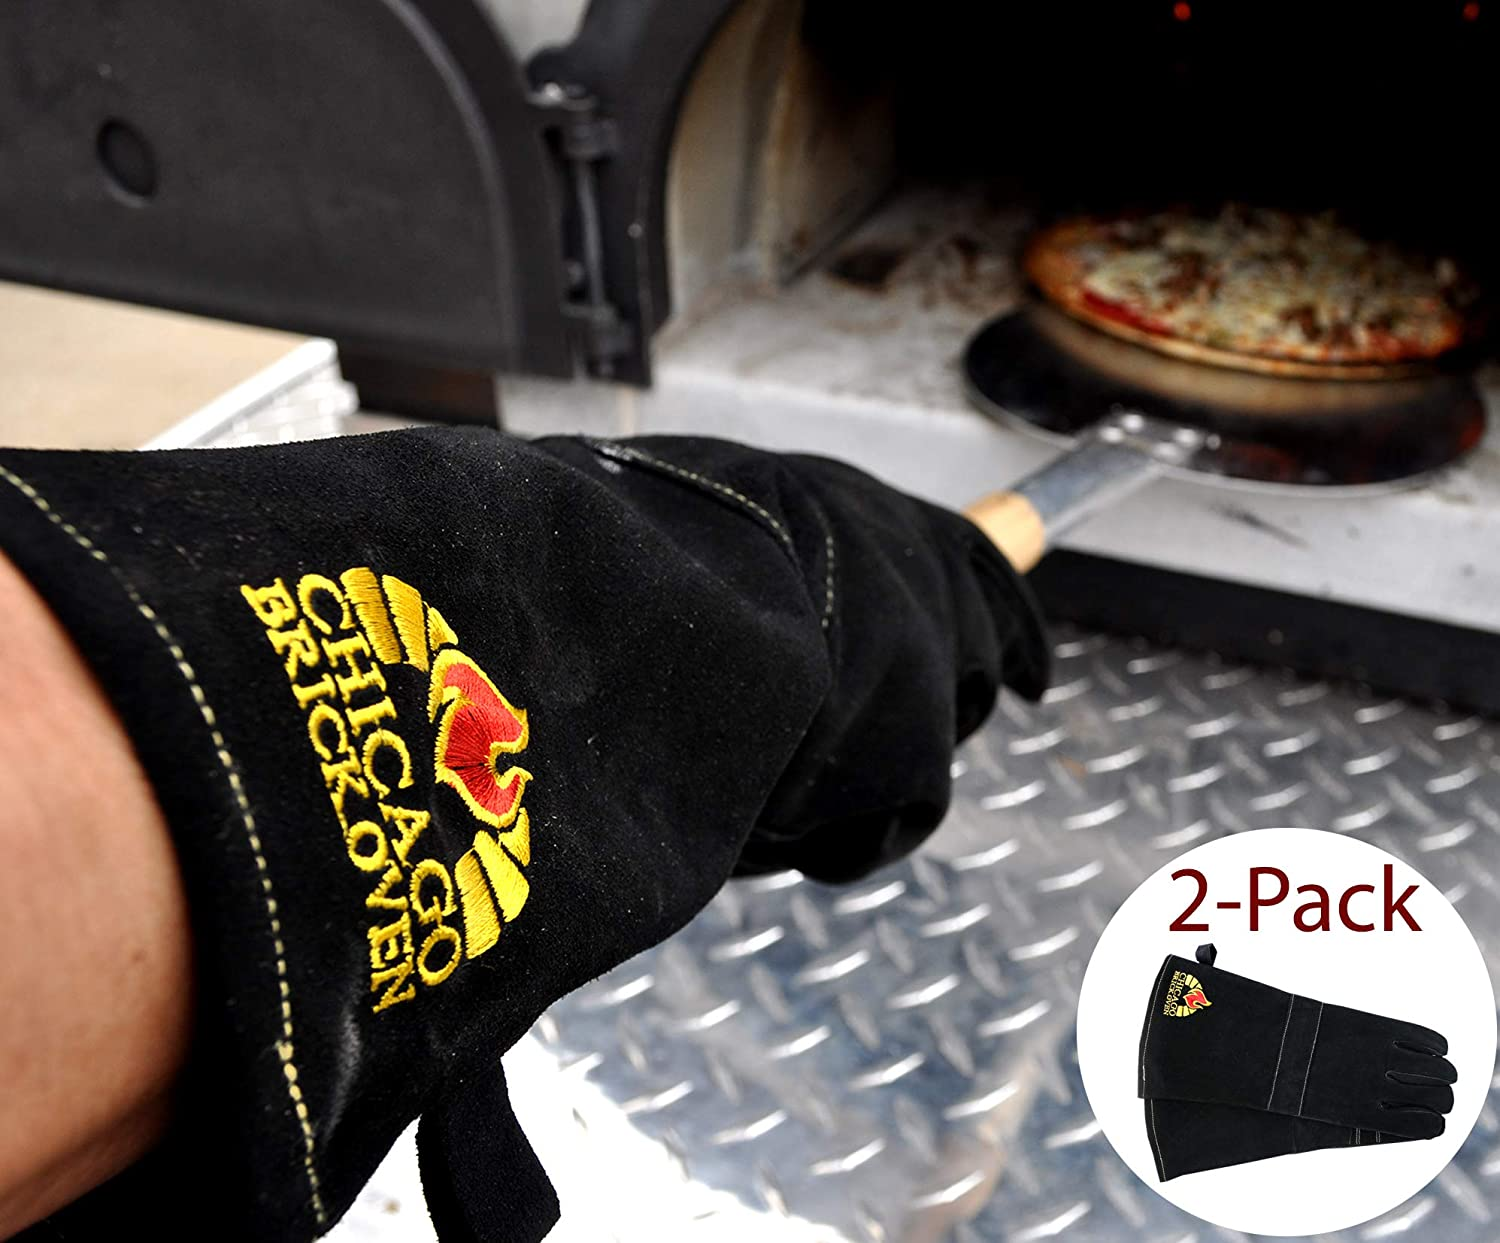 Versatile Welding BBQ Oven Gloves with Premium Cowhide Leather and Kevlar Stitching Heat Fire Resistant up to 932° F 16 Extra Long Sleeves for Safety Protection